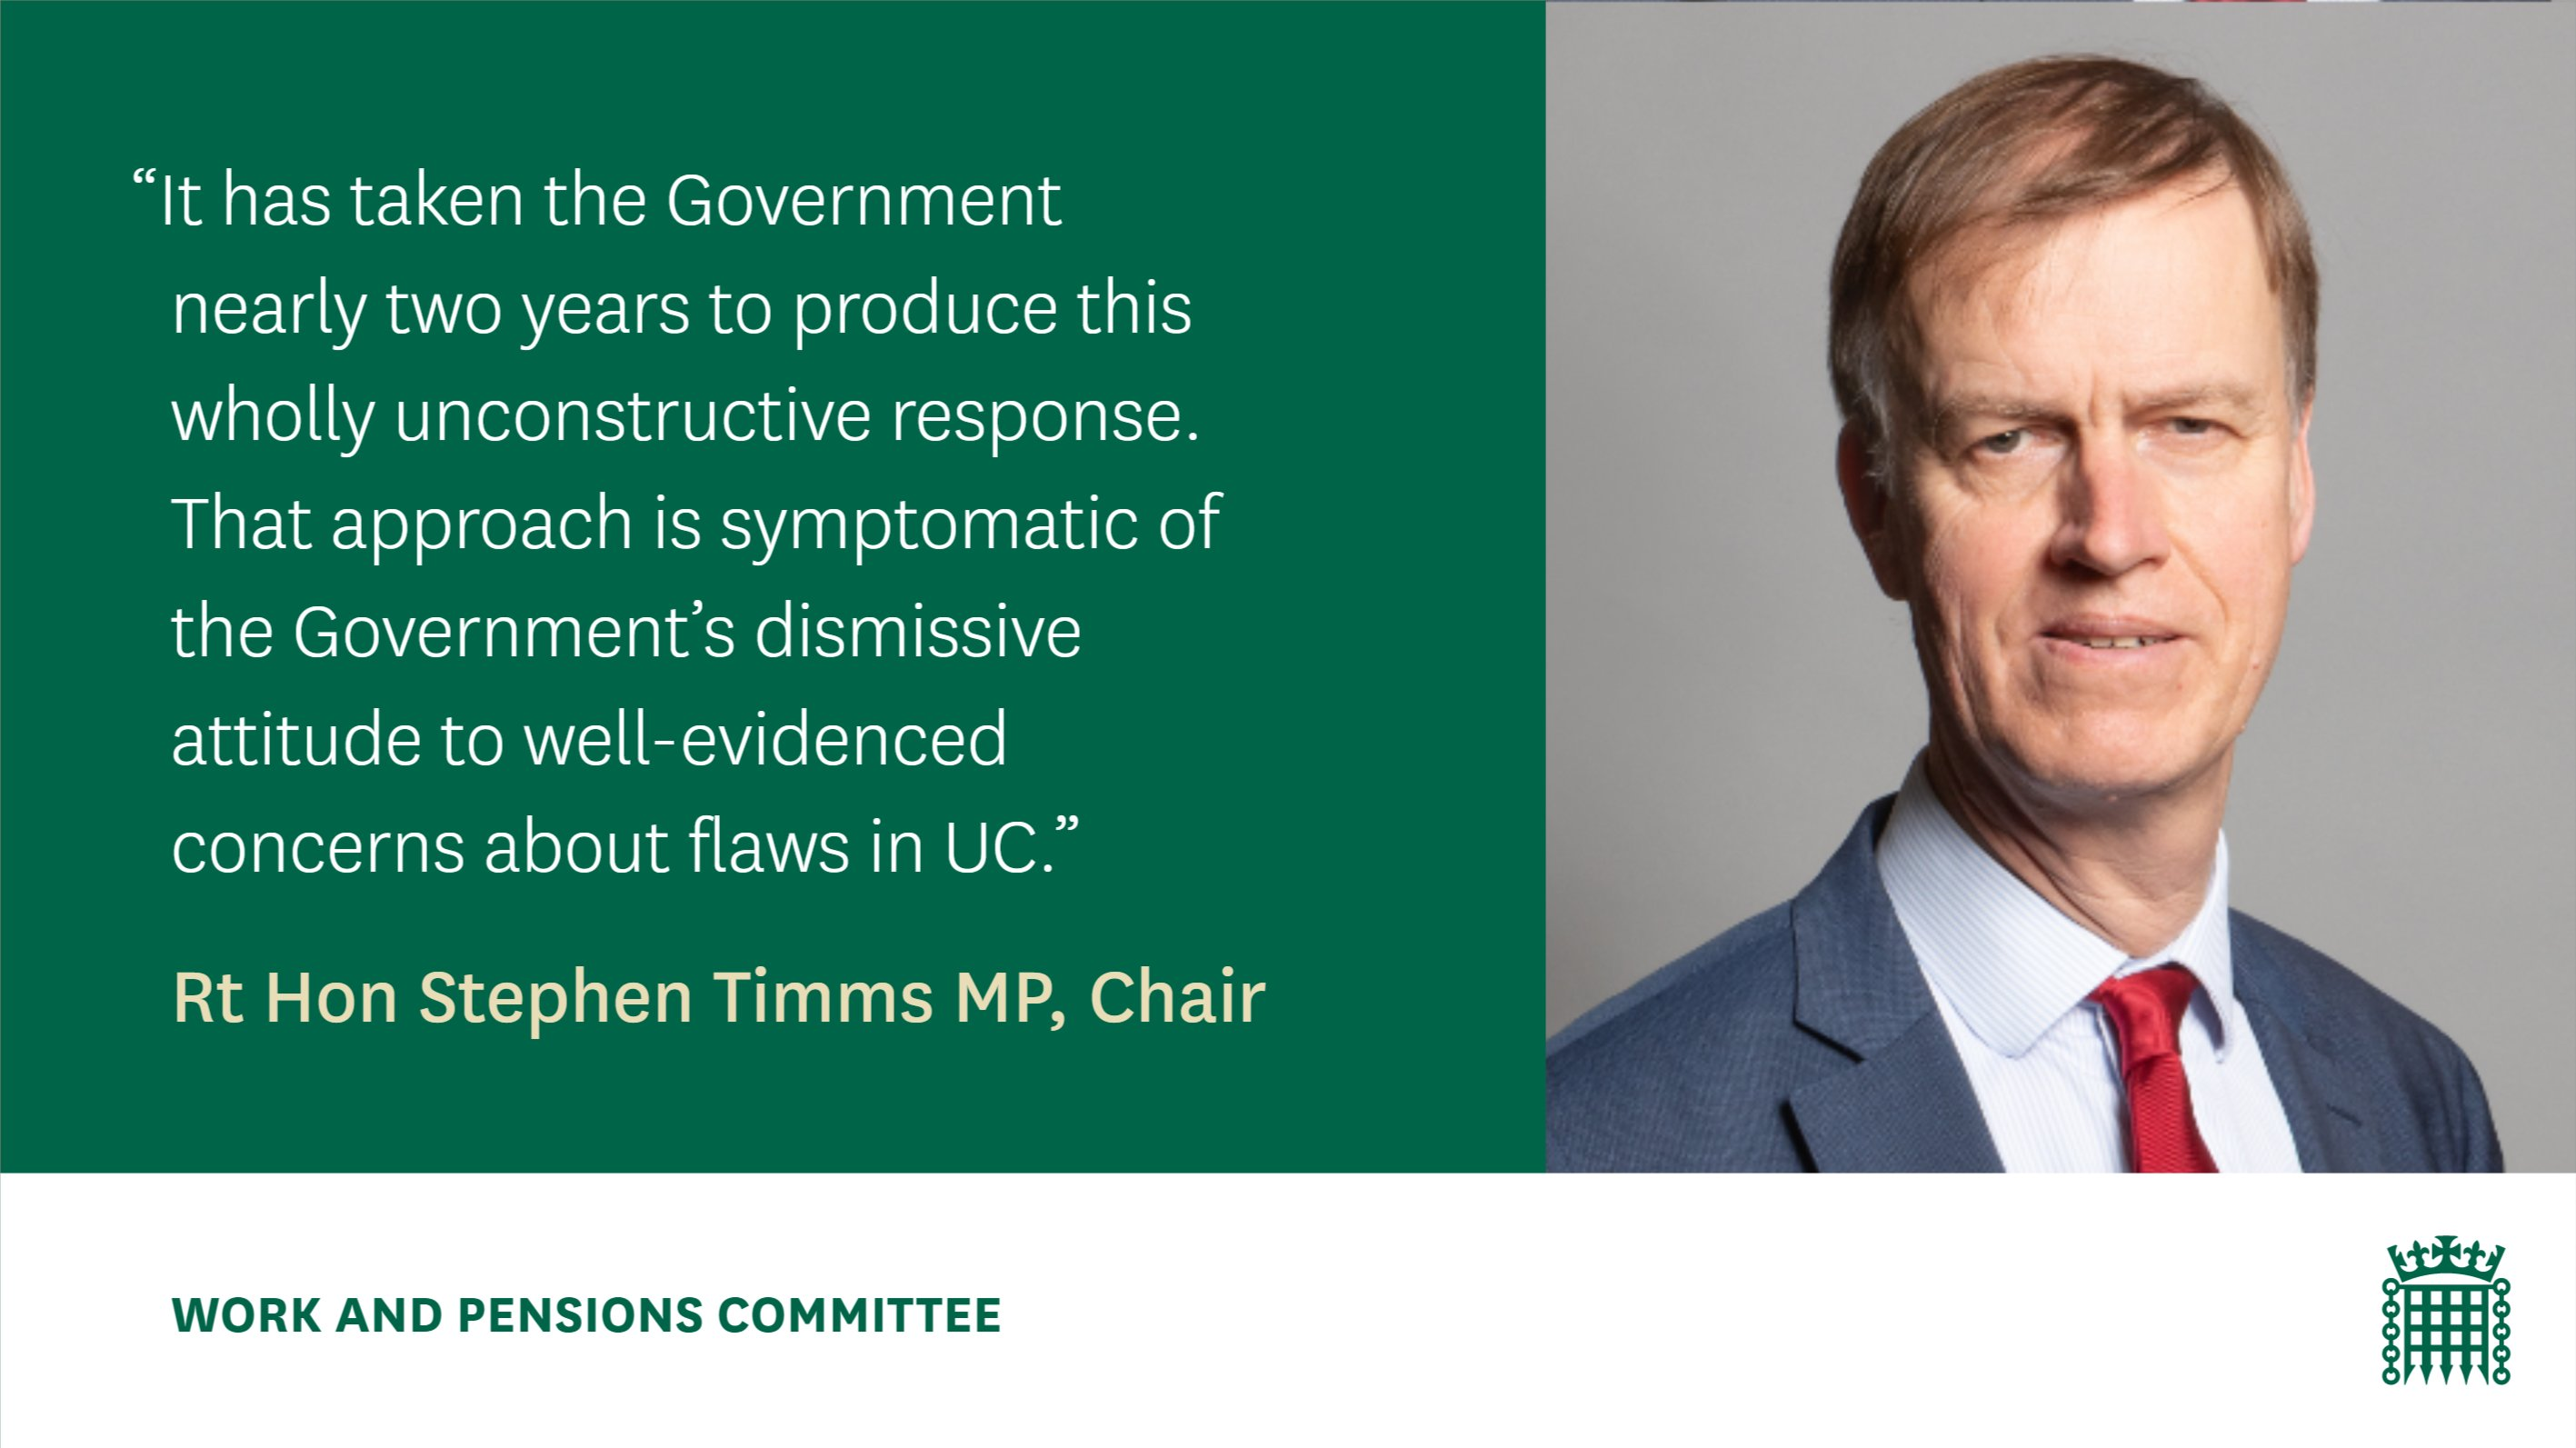 """""""It has taken the Government nearly two years to produce this wholly unconstructive response. That approach is symptomatic of the Government's dismissive attitude to well-evidenced concerns about flaws in UC.""""  Rt Hon Stephen Timms MP, Chair Work and Pensions Committee"""